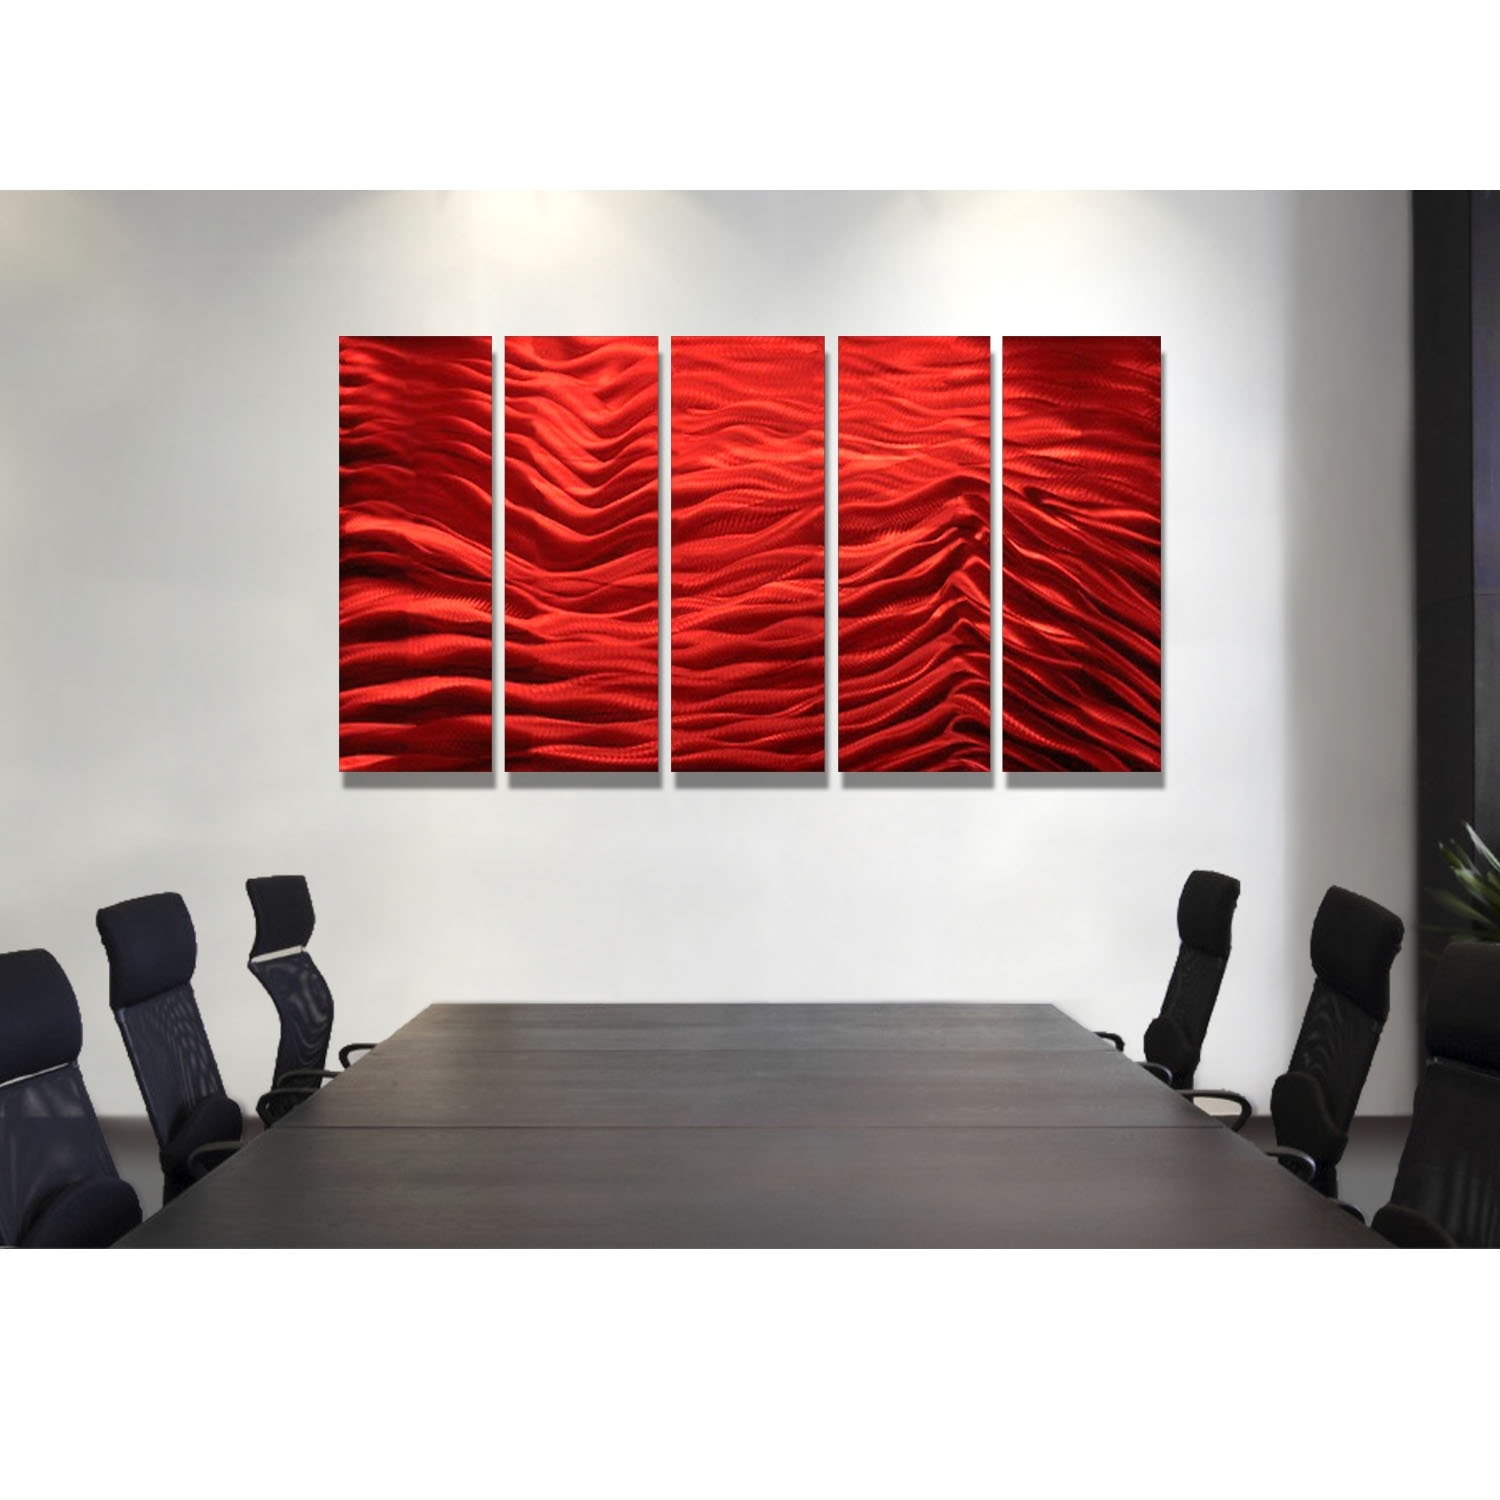 Red Inertia – Red Metal Wall Art – 5 Panel Wall Décorjon Allen Pertaining To Recent 5 Panel Wall Art (Gallery 3 of 20)